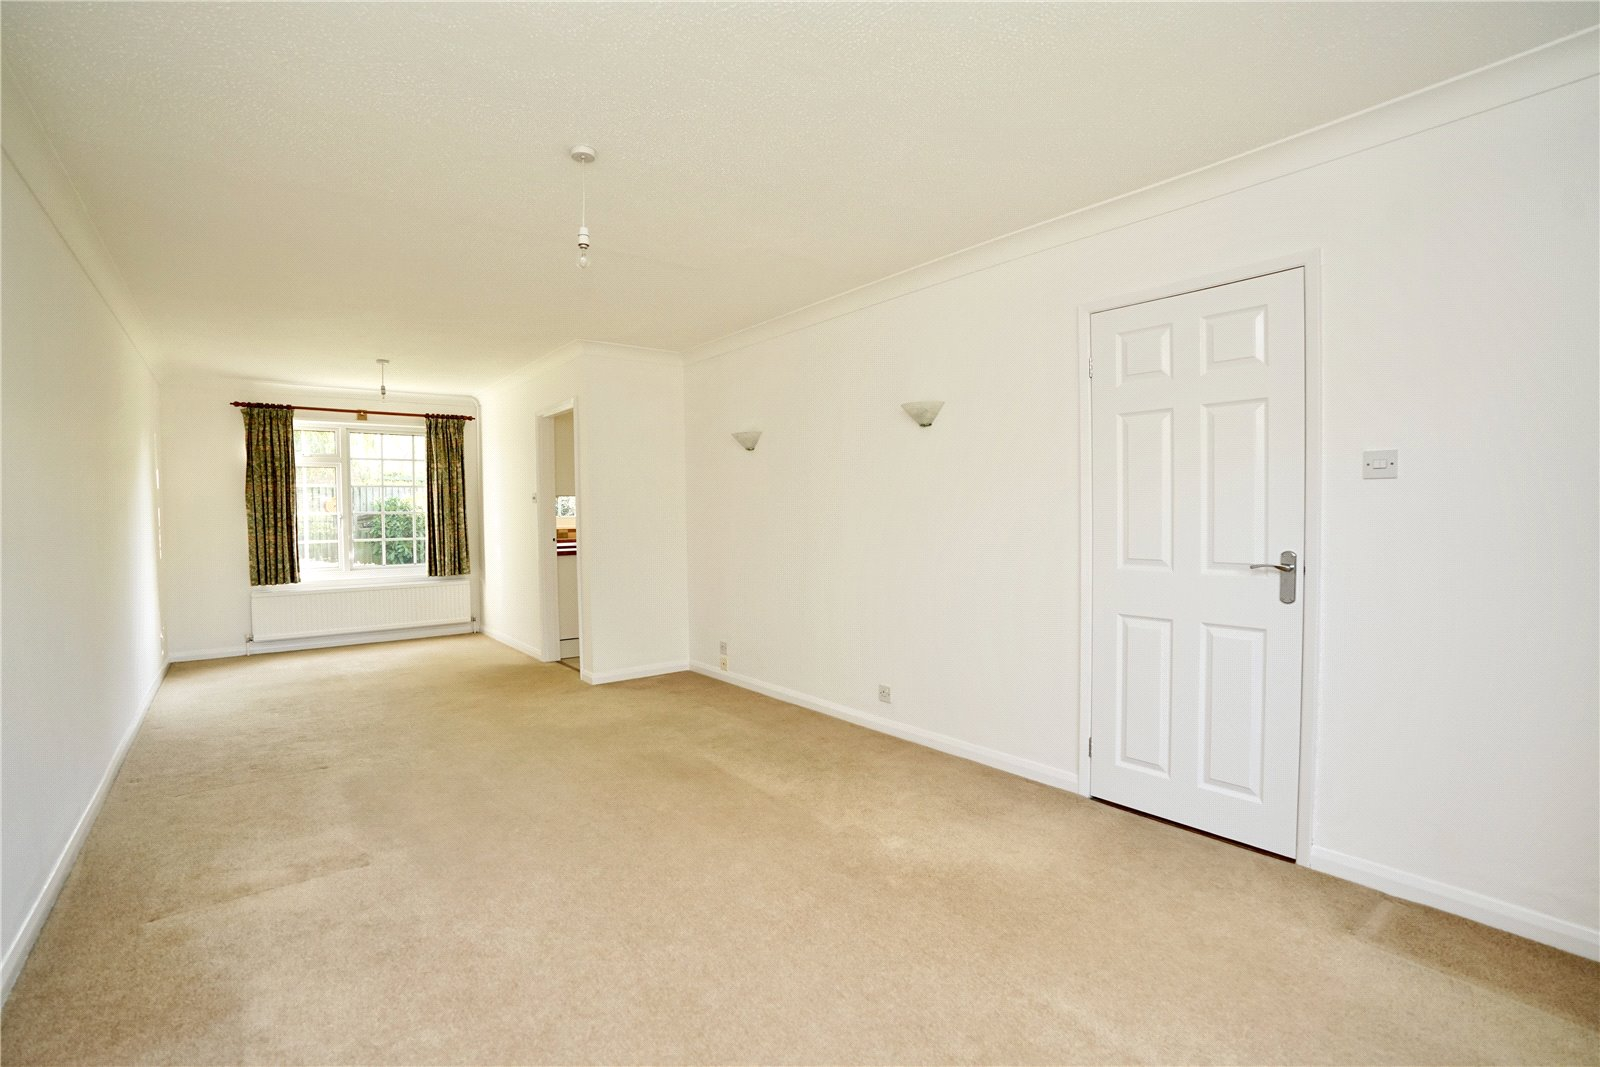 4 bed house for sale in All Hallows, Sandy 2